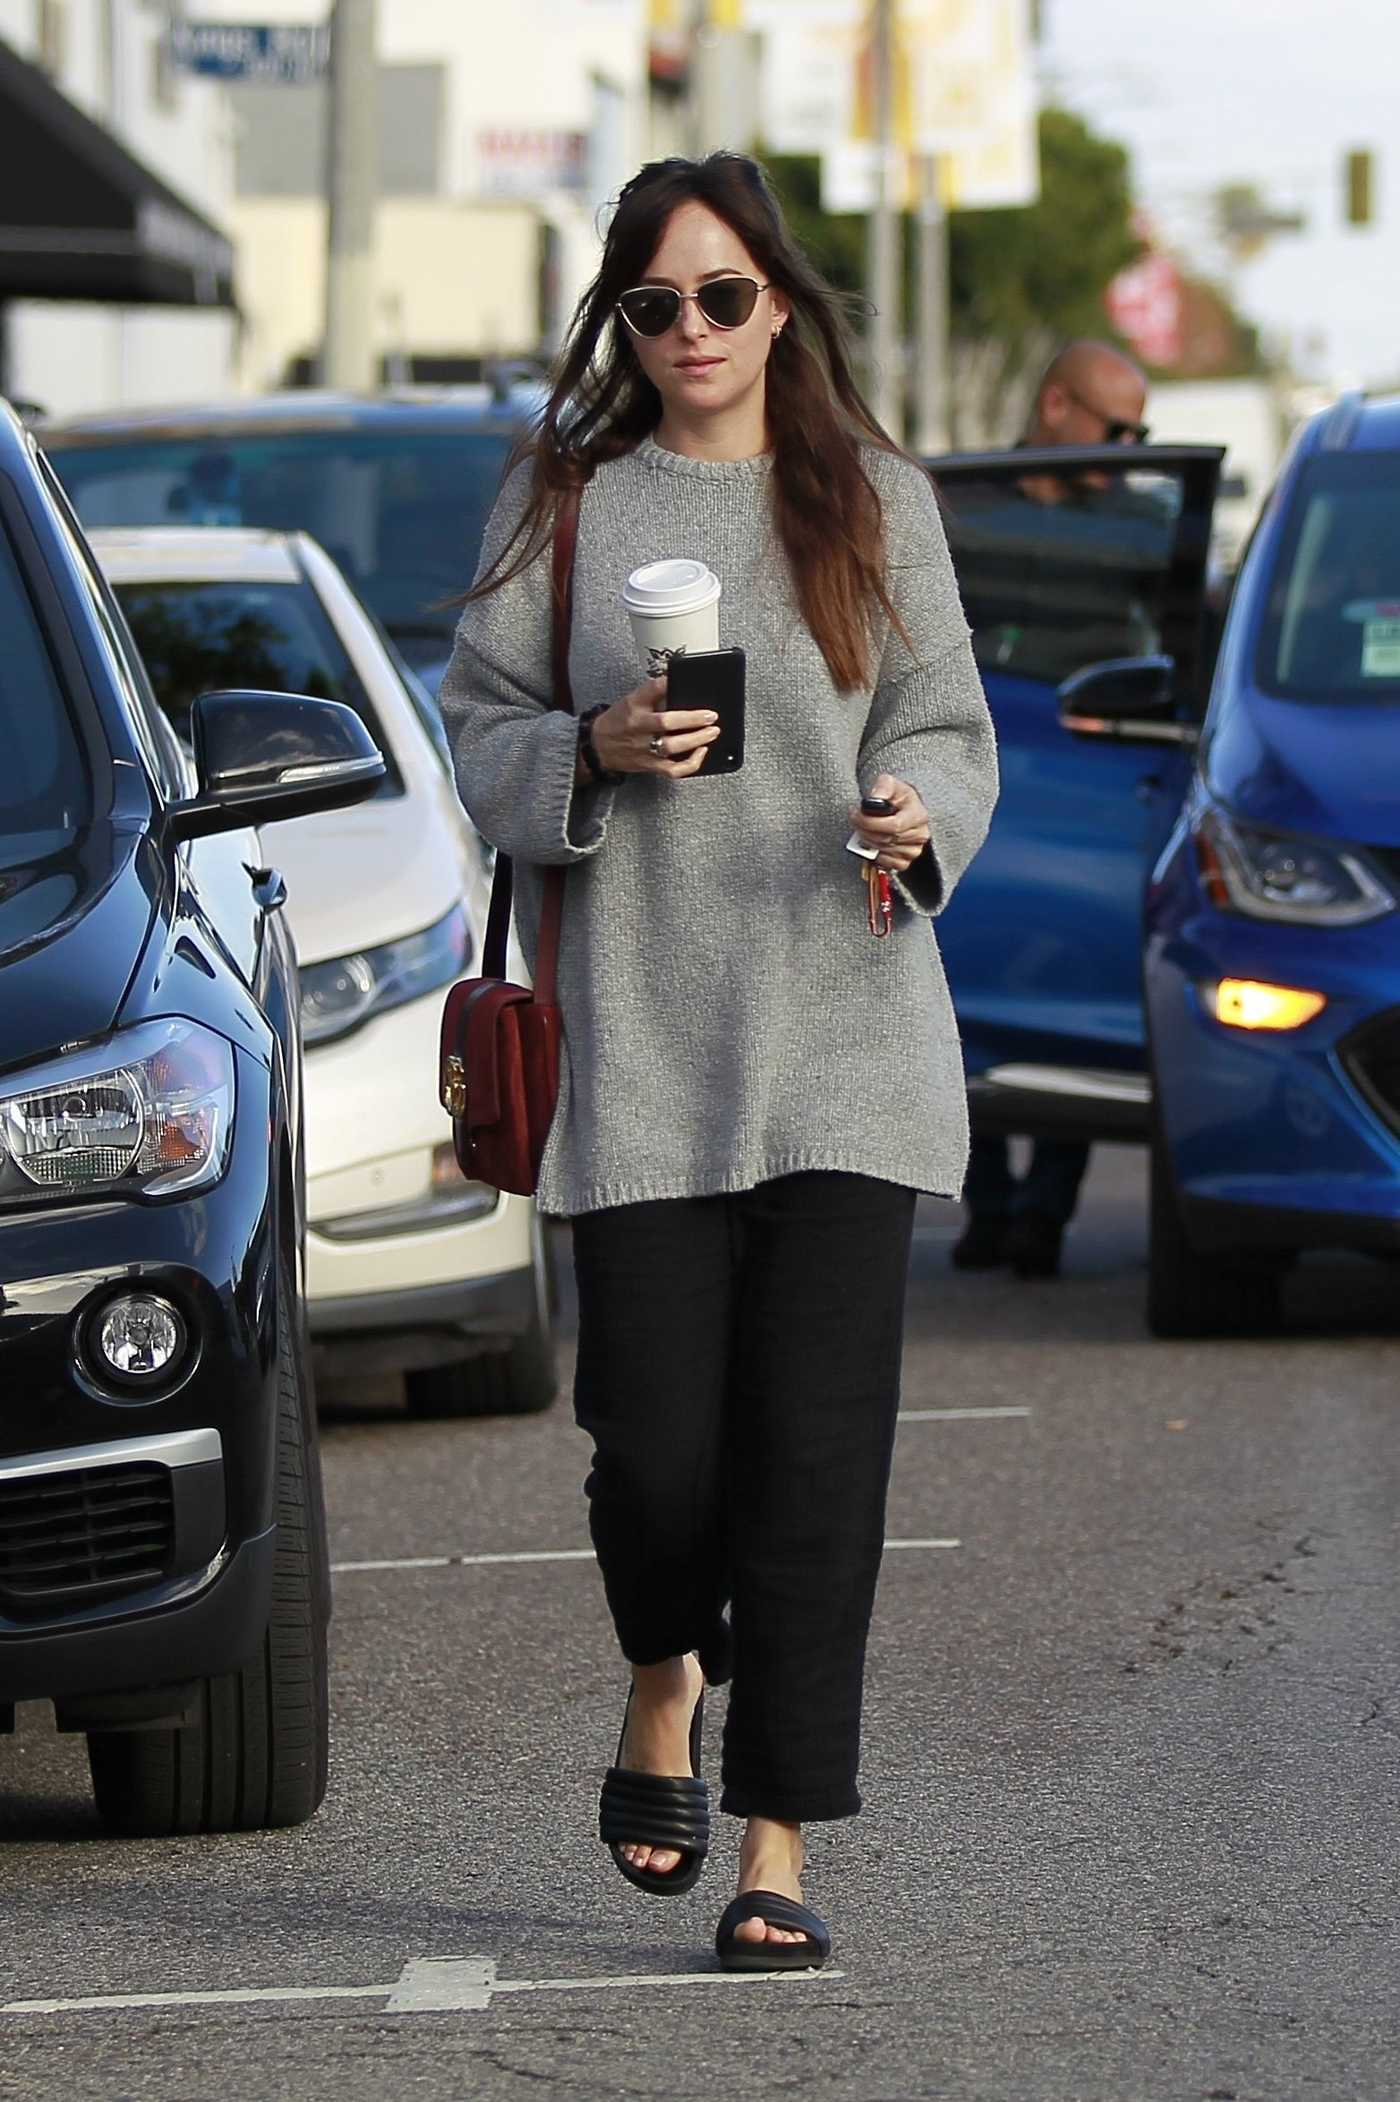 Dakota Johnson in a Gray Sweater Gets Some Grocery Shopping Done at Erewhon Market in West Hollywood 01/06/2019